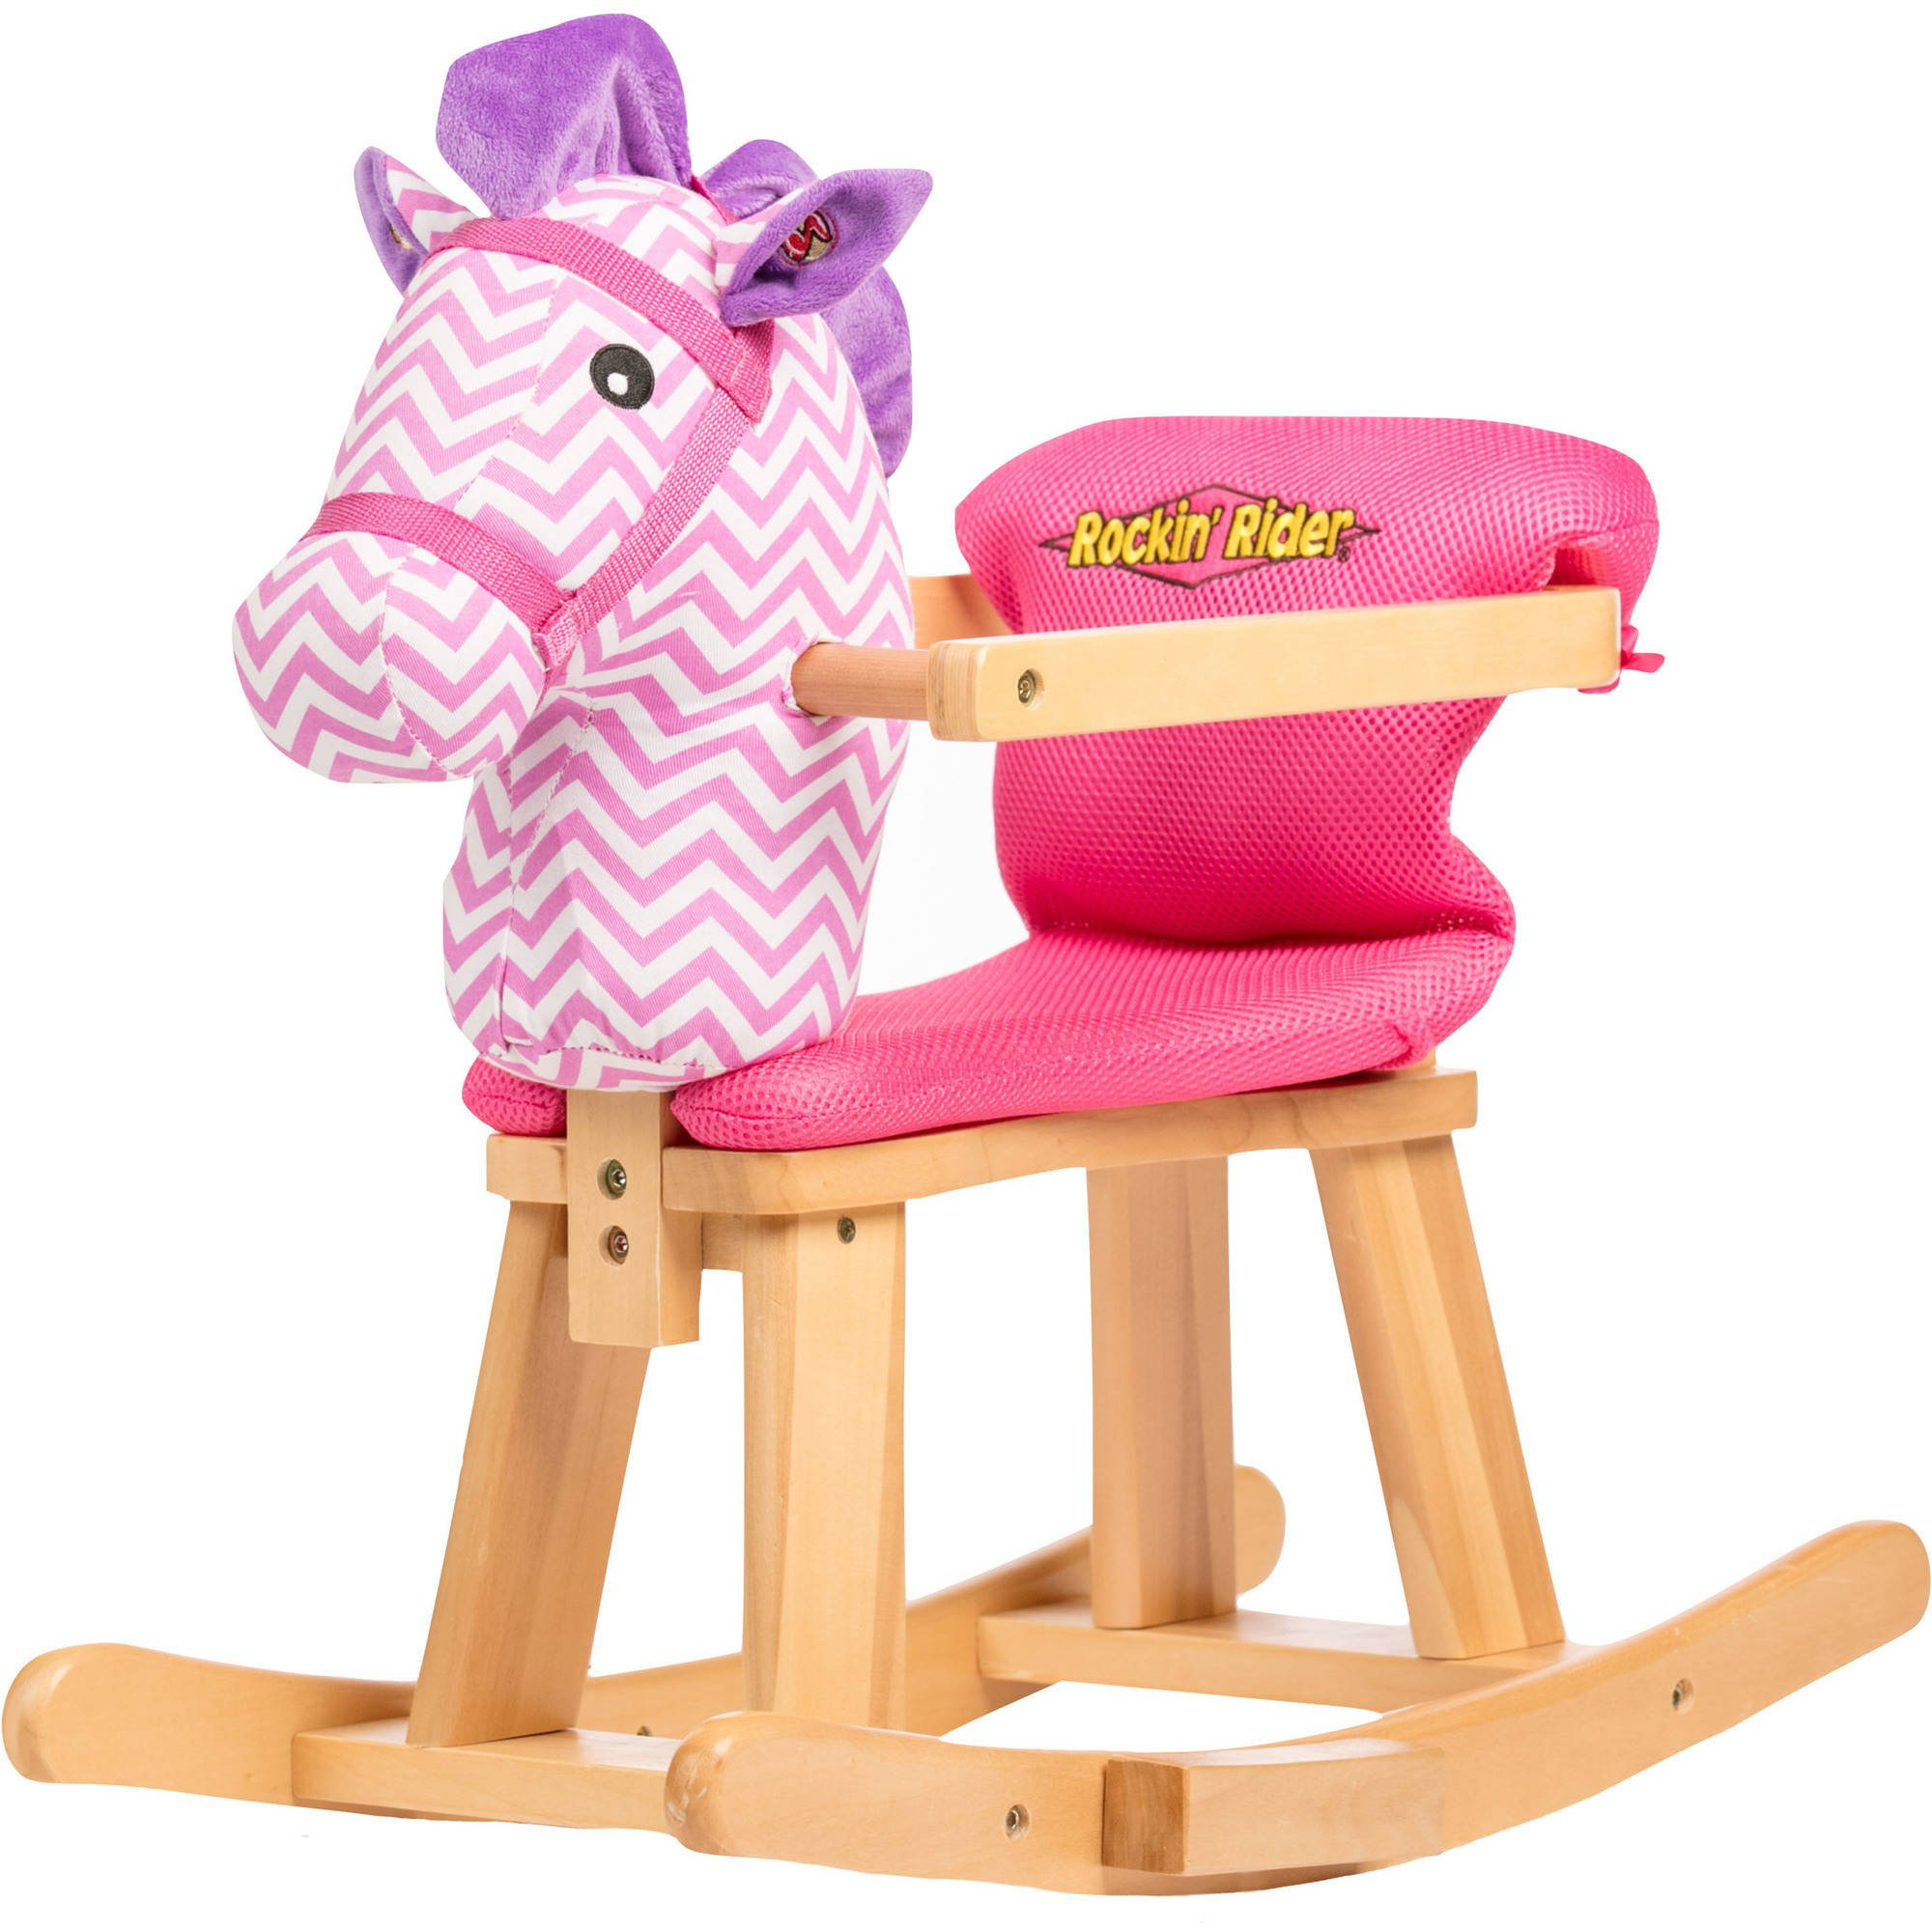 TOUGH DURABLE SUPER COMFY SO ADORABLE PINK AND PURPLE Rockin' Rider Tip-Toe Baby's First Rocker With Removal Cushion Seat For Easy Cleaning